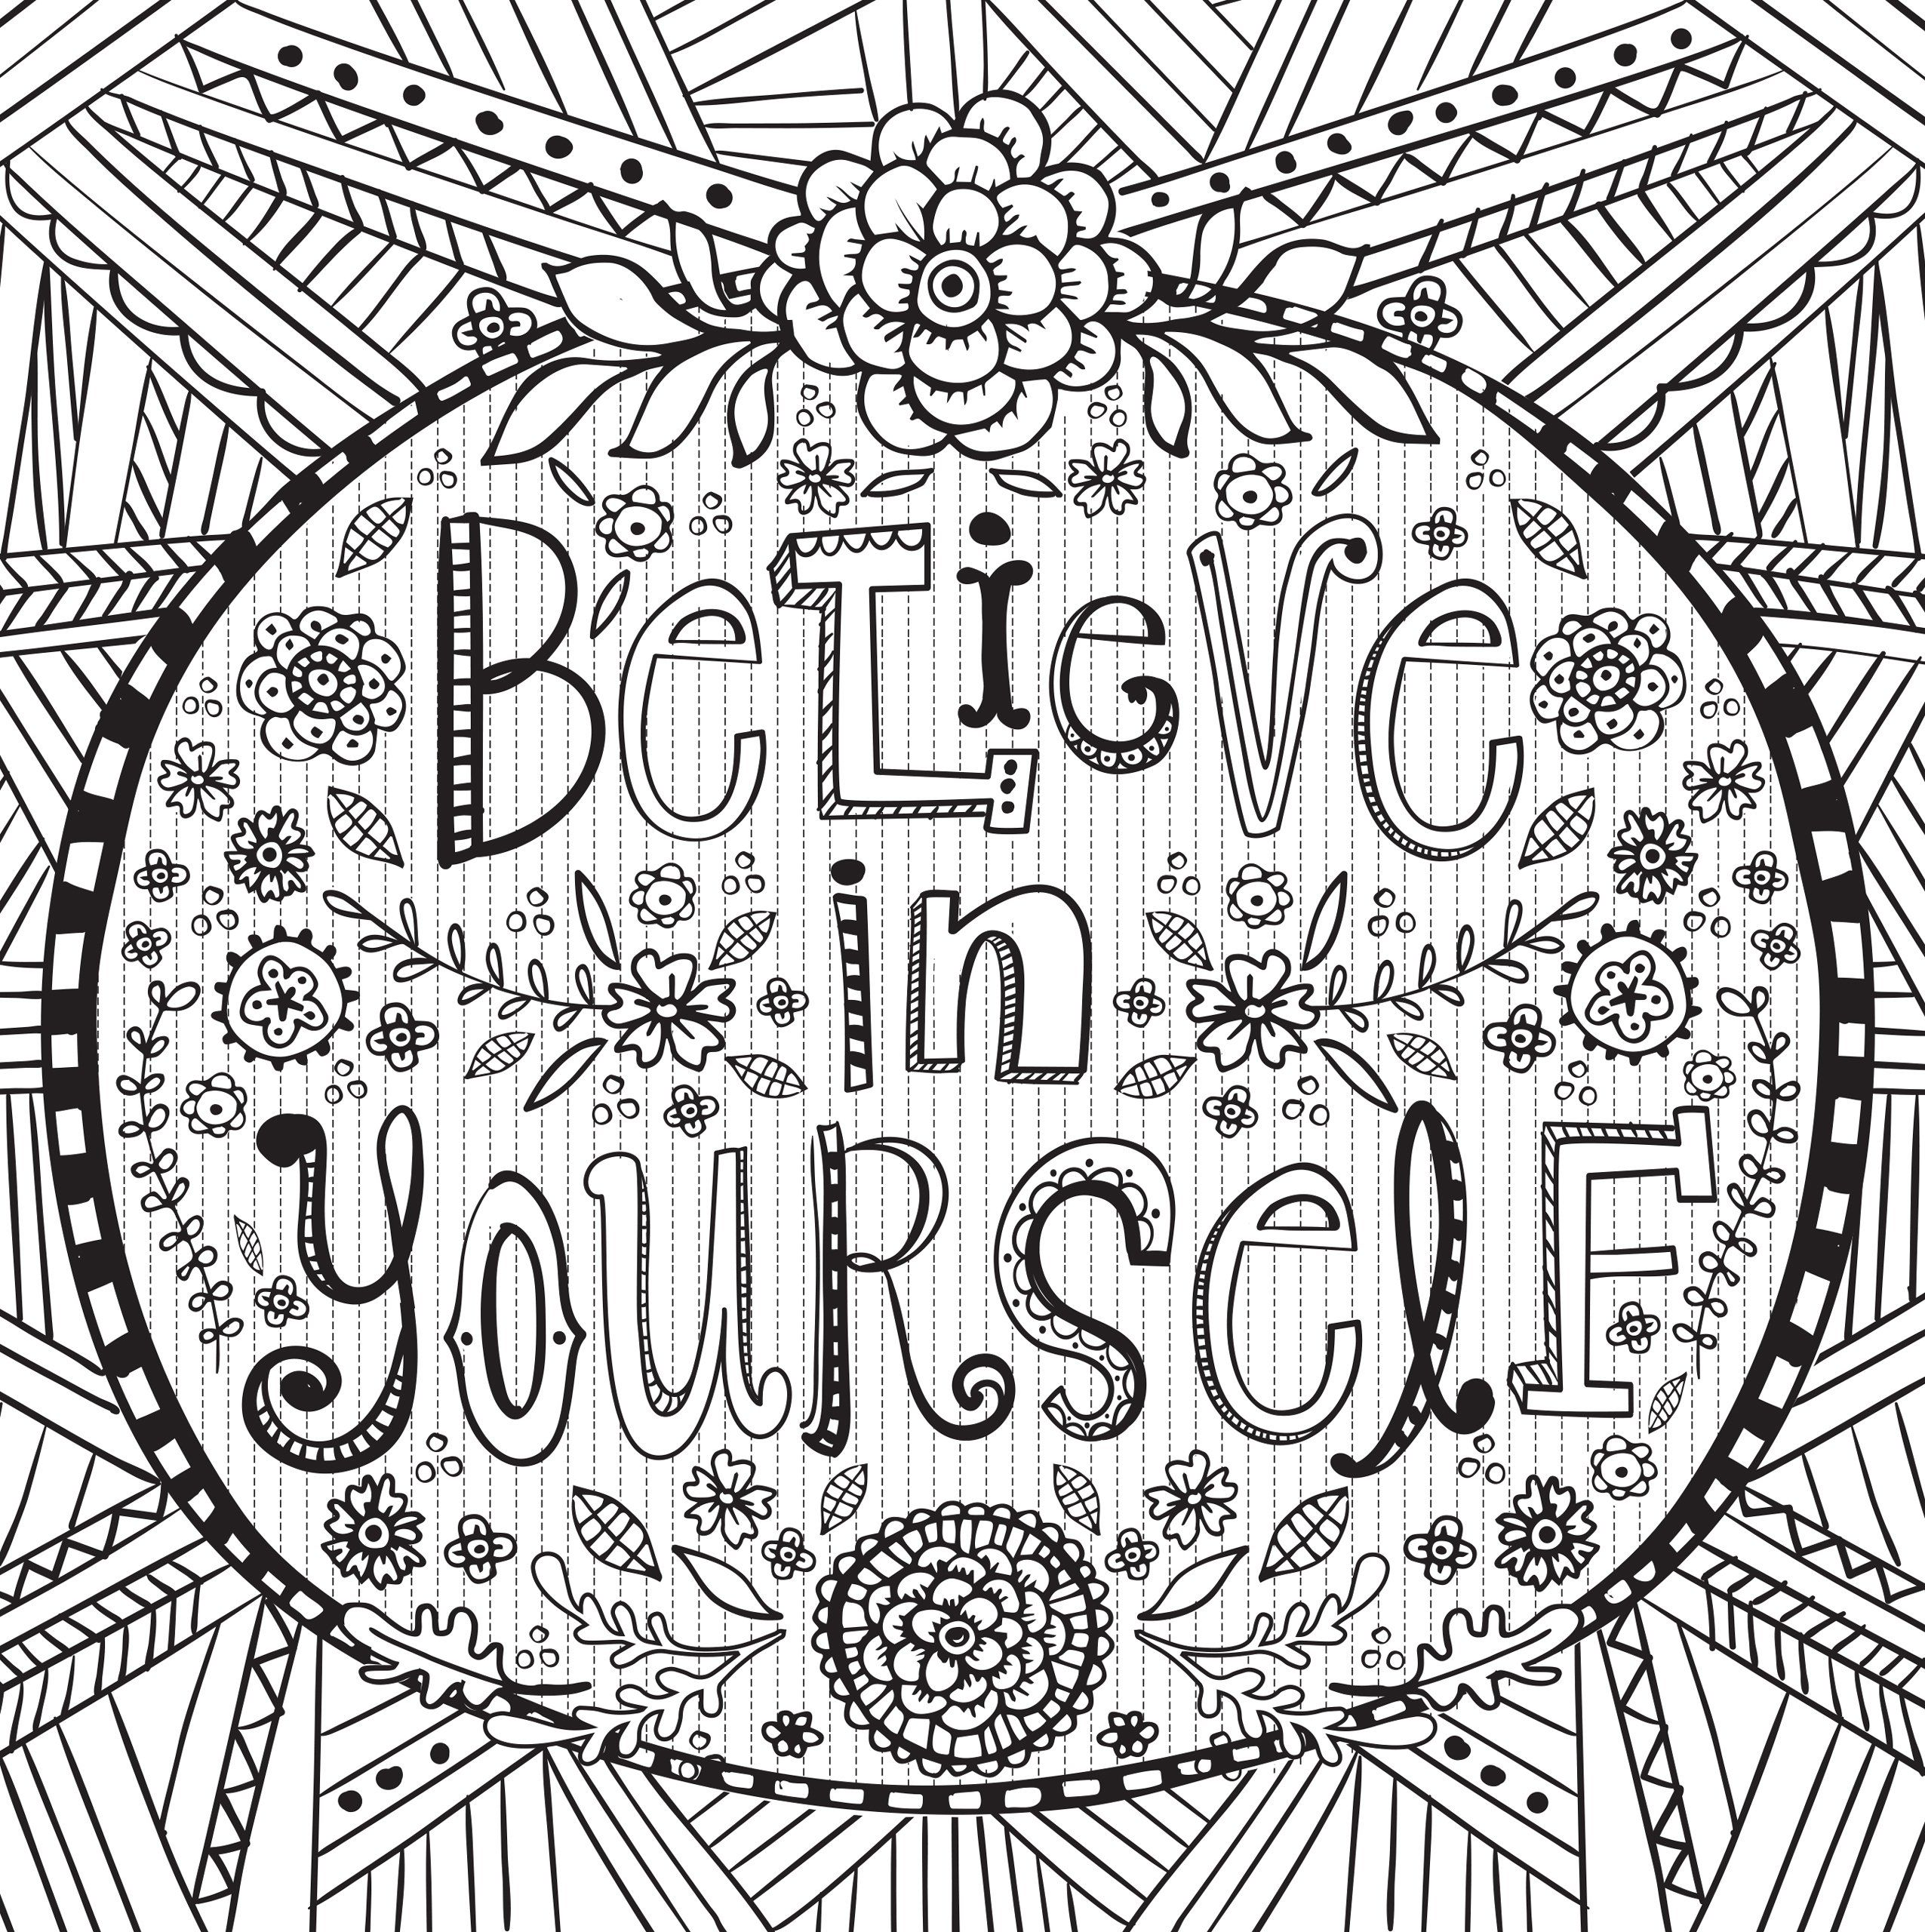 Joyful Inspiration Adult Coloring Book stressrelieving designs